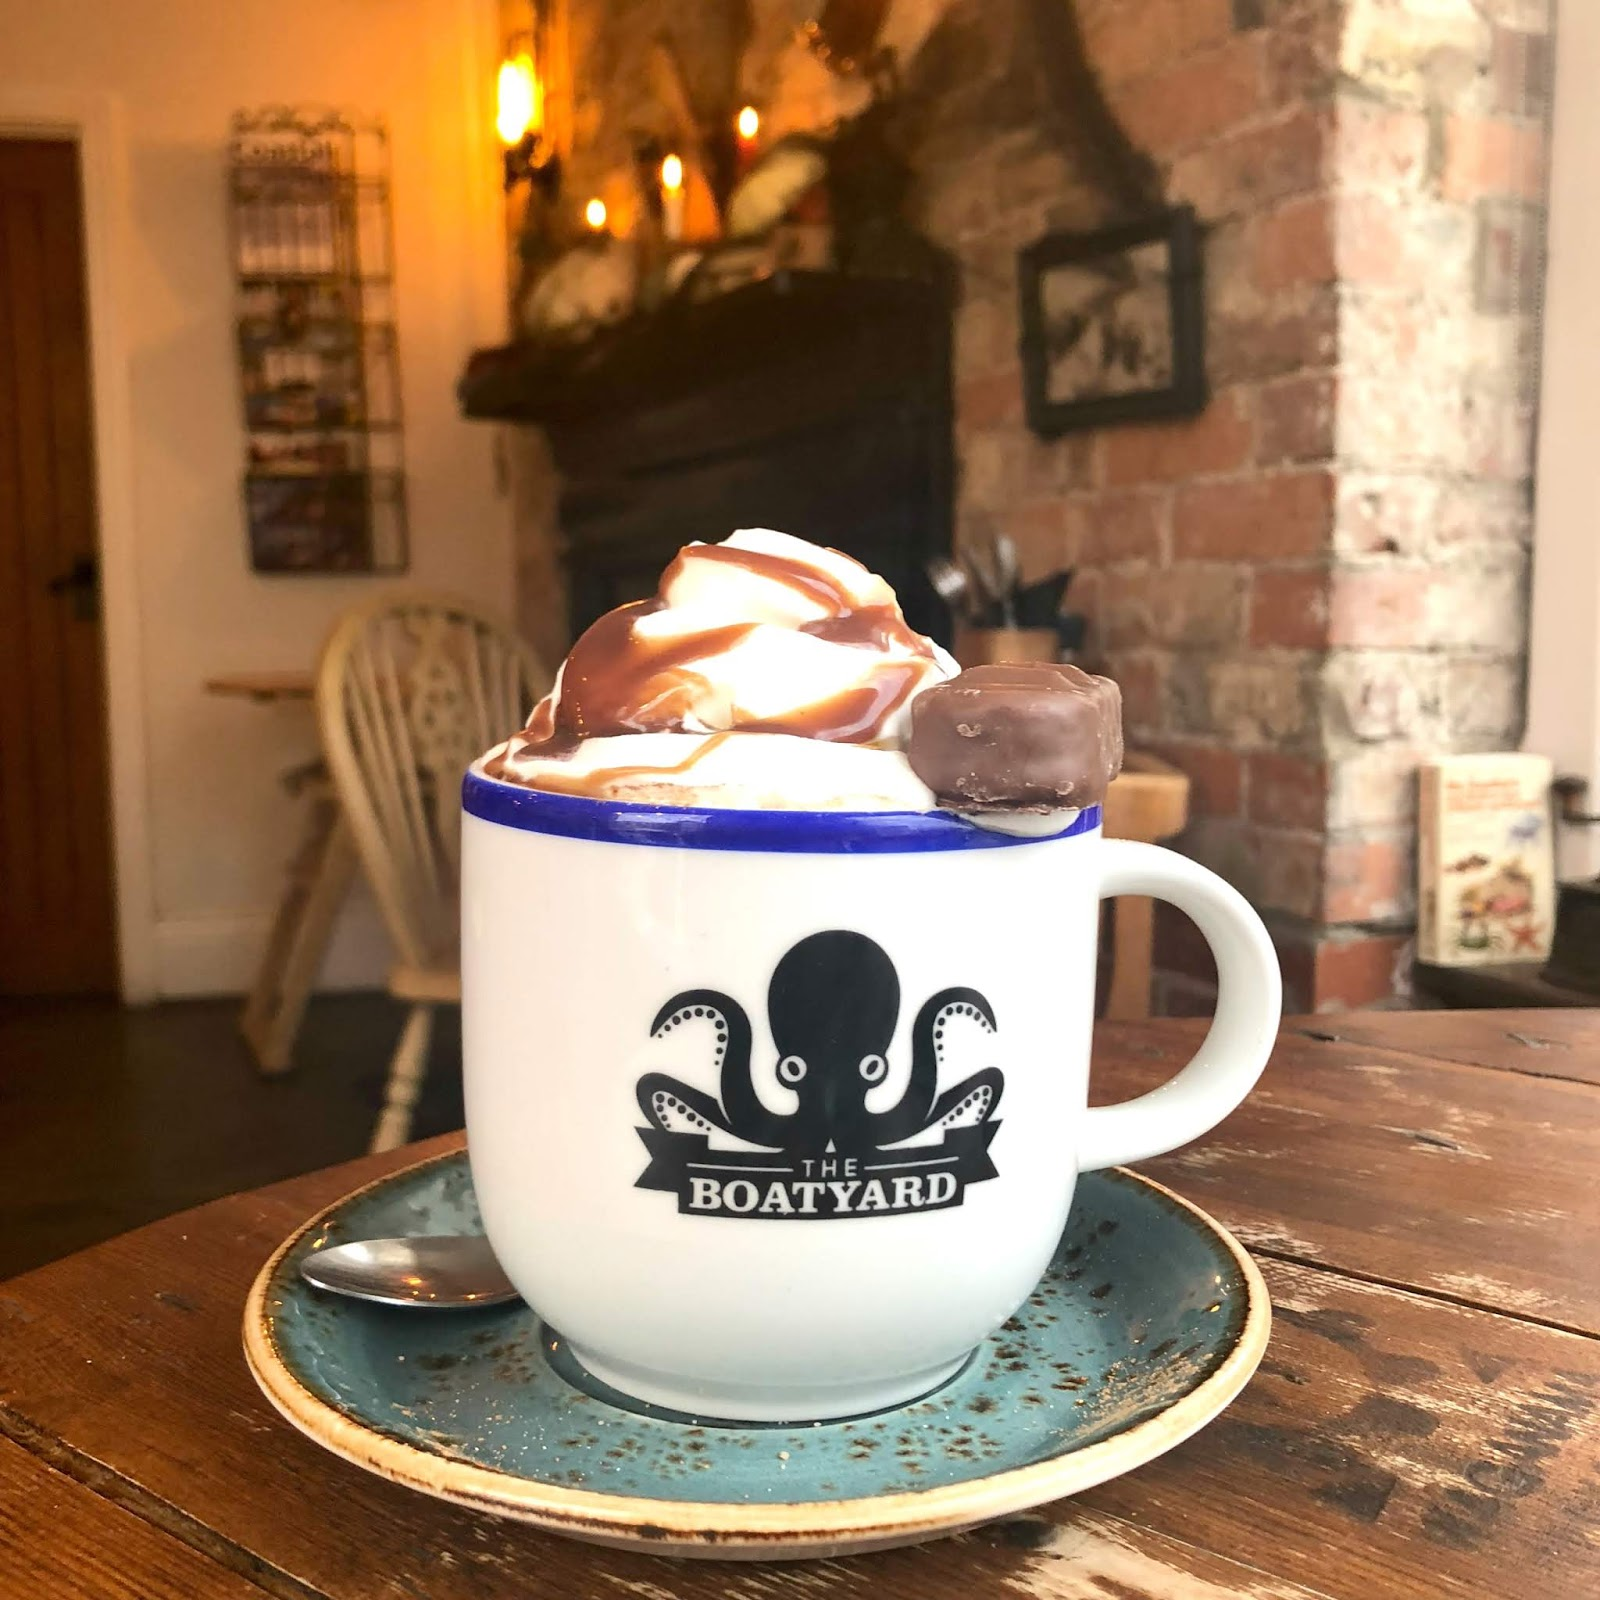 Best Hot Chocolate North East - The Boatyard